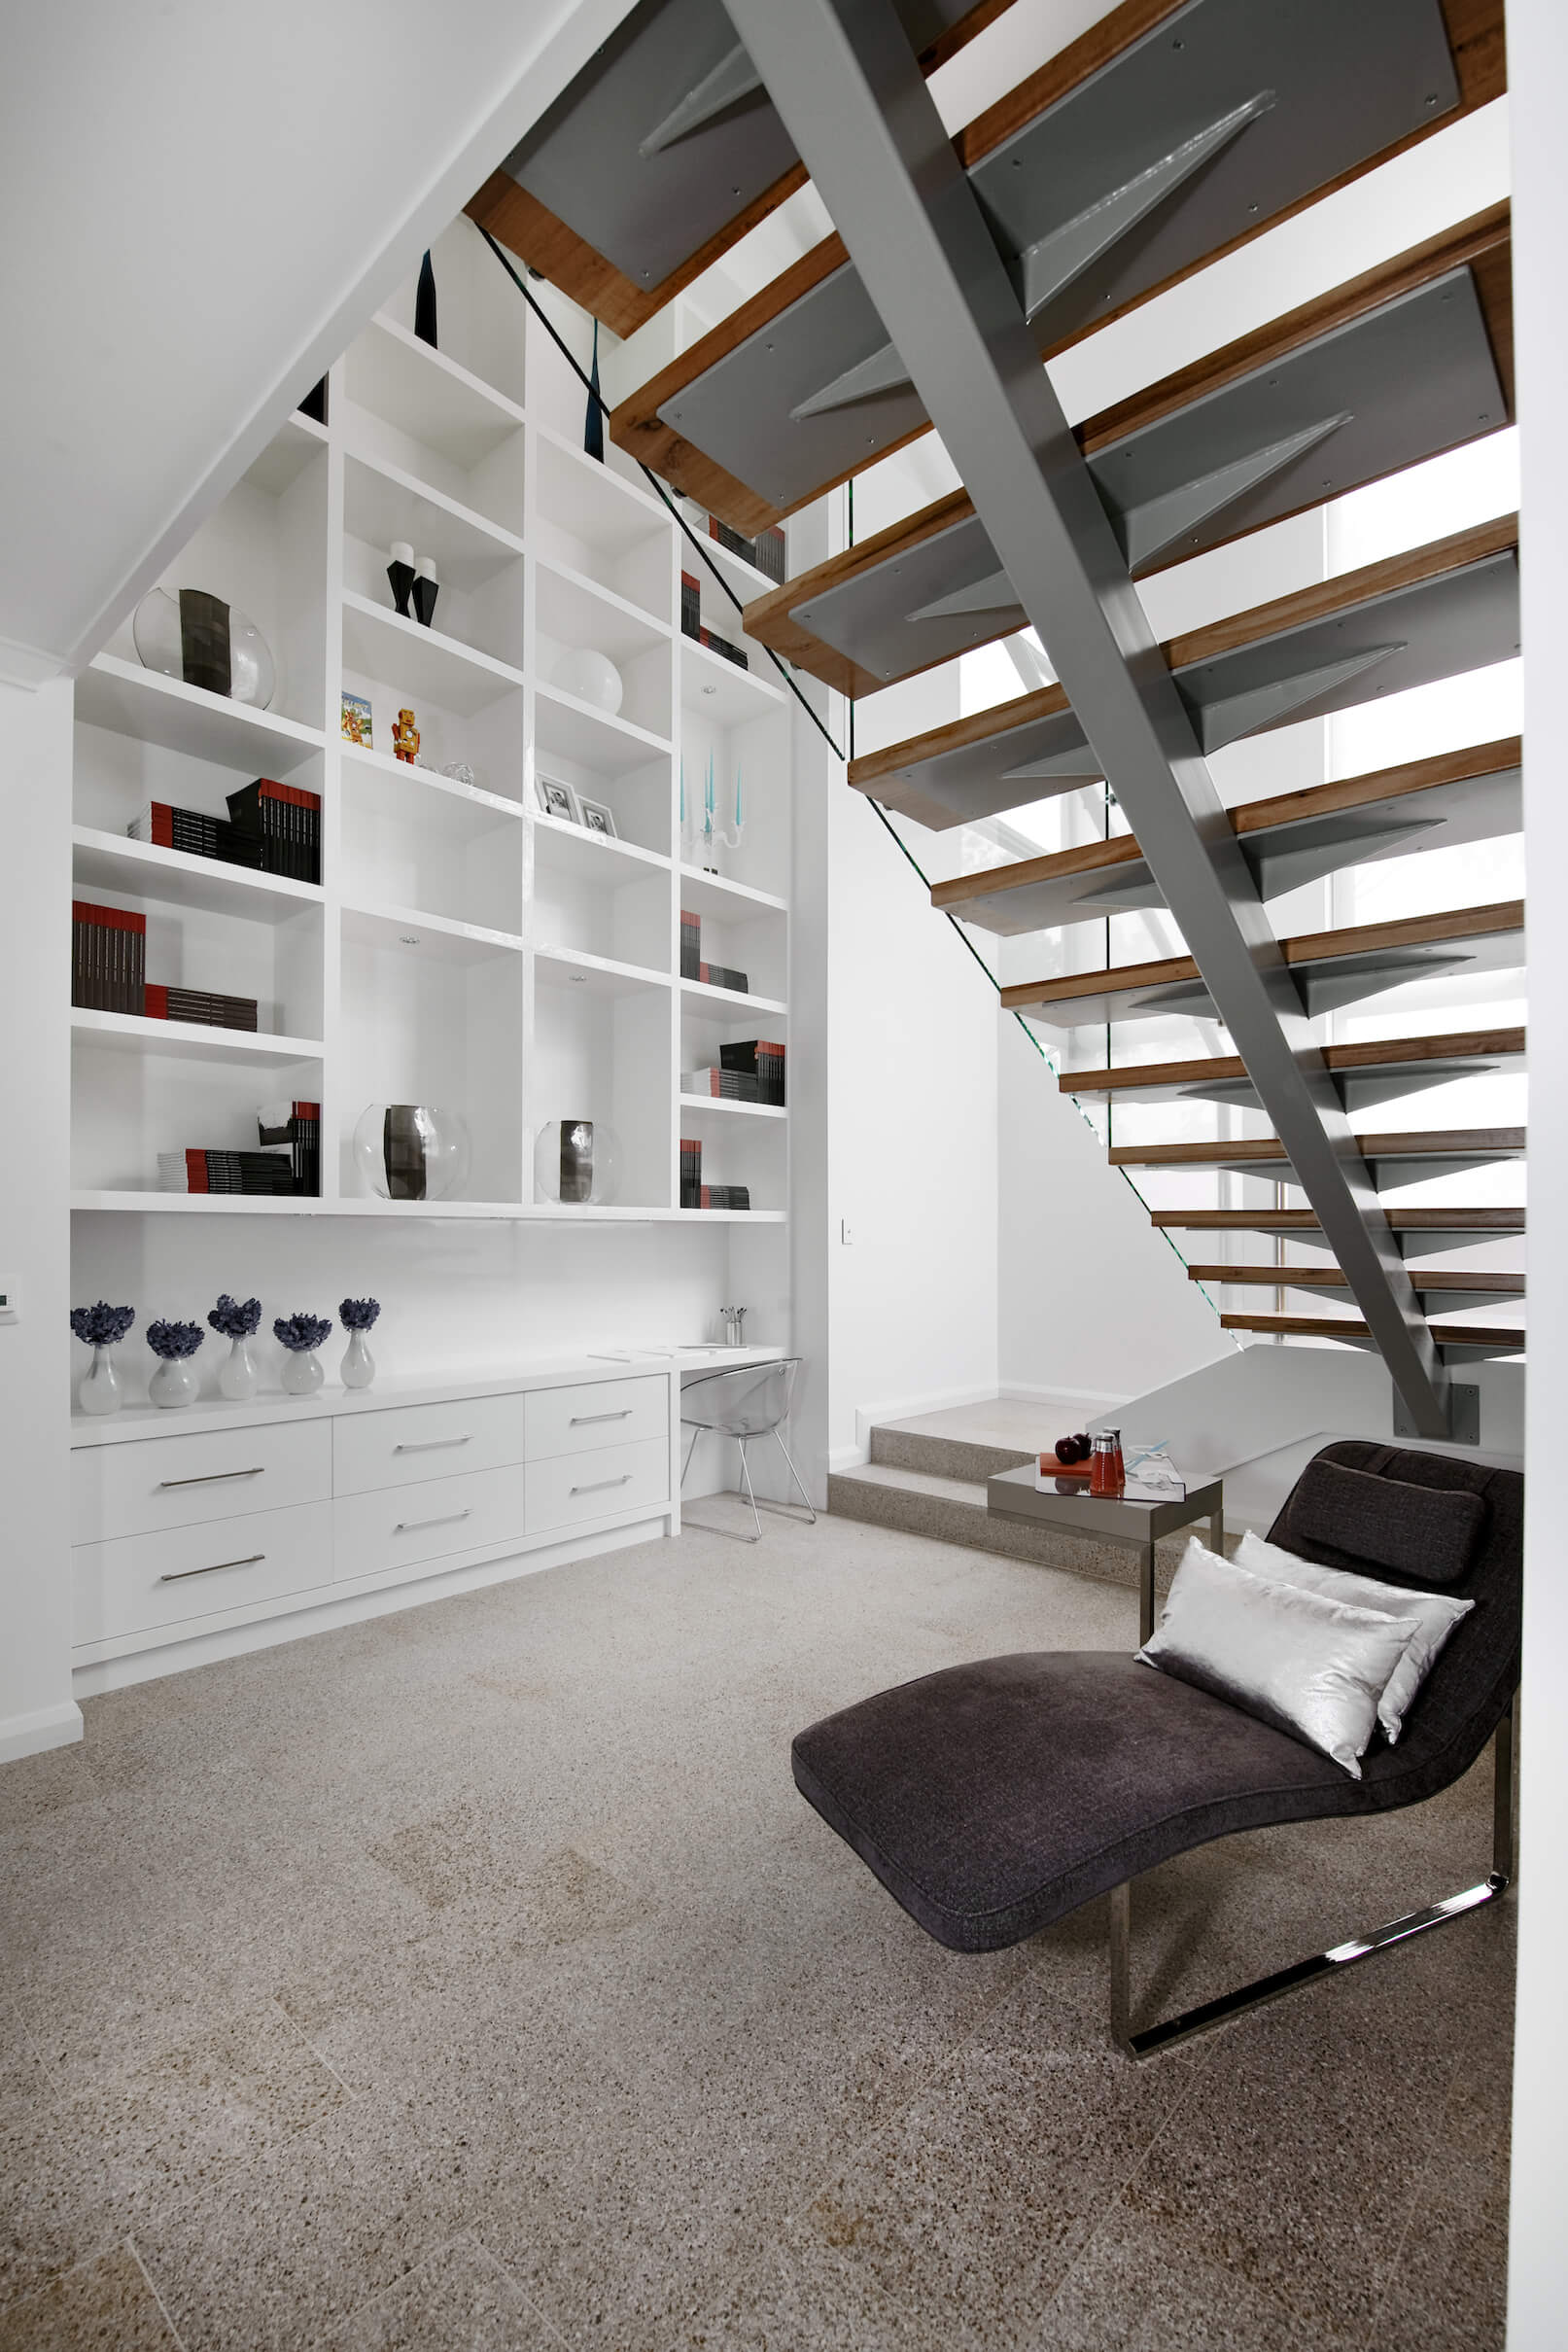 This angle shows more of the giant, two story bookshelf built into the structure, with desk surface at bottom and series of sectioned shelving extending upwards.